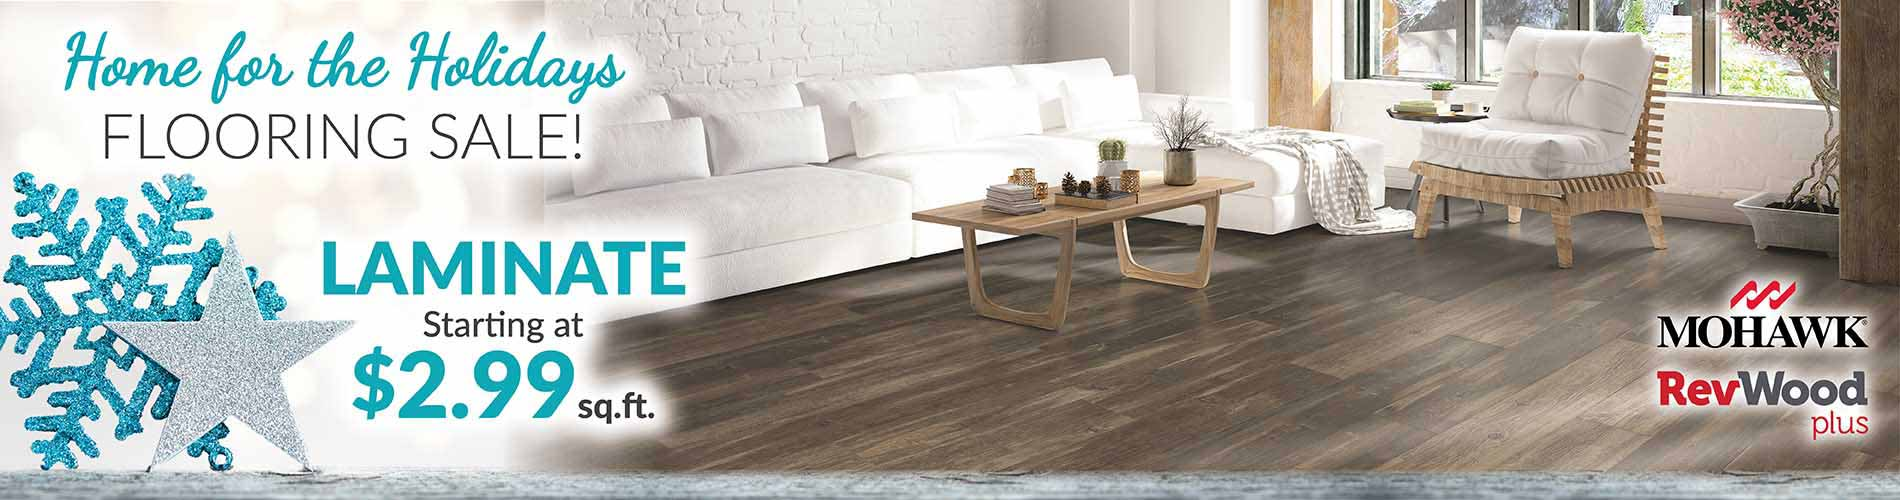 Mohawk Revwood Plus Hickory Laminate Flooring starting at $2.99 sq.ft. during our Home for the Holidays Sale at Bell Carpet & Floors in Wichita, KS